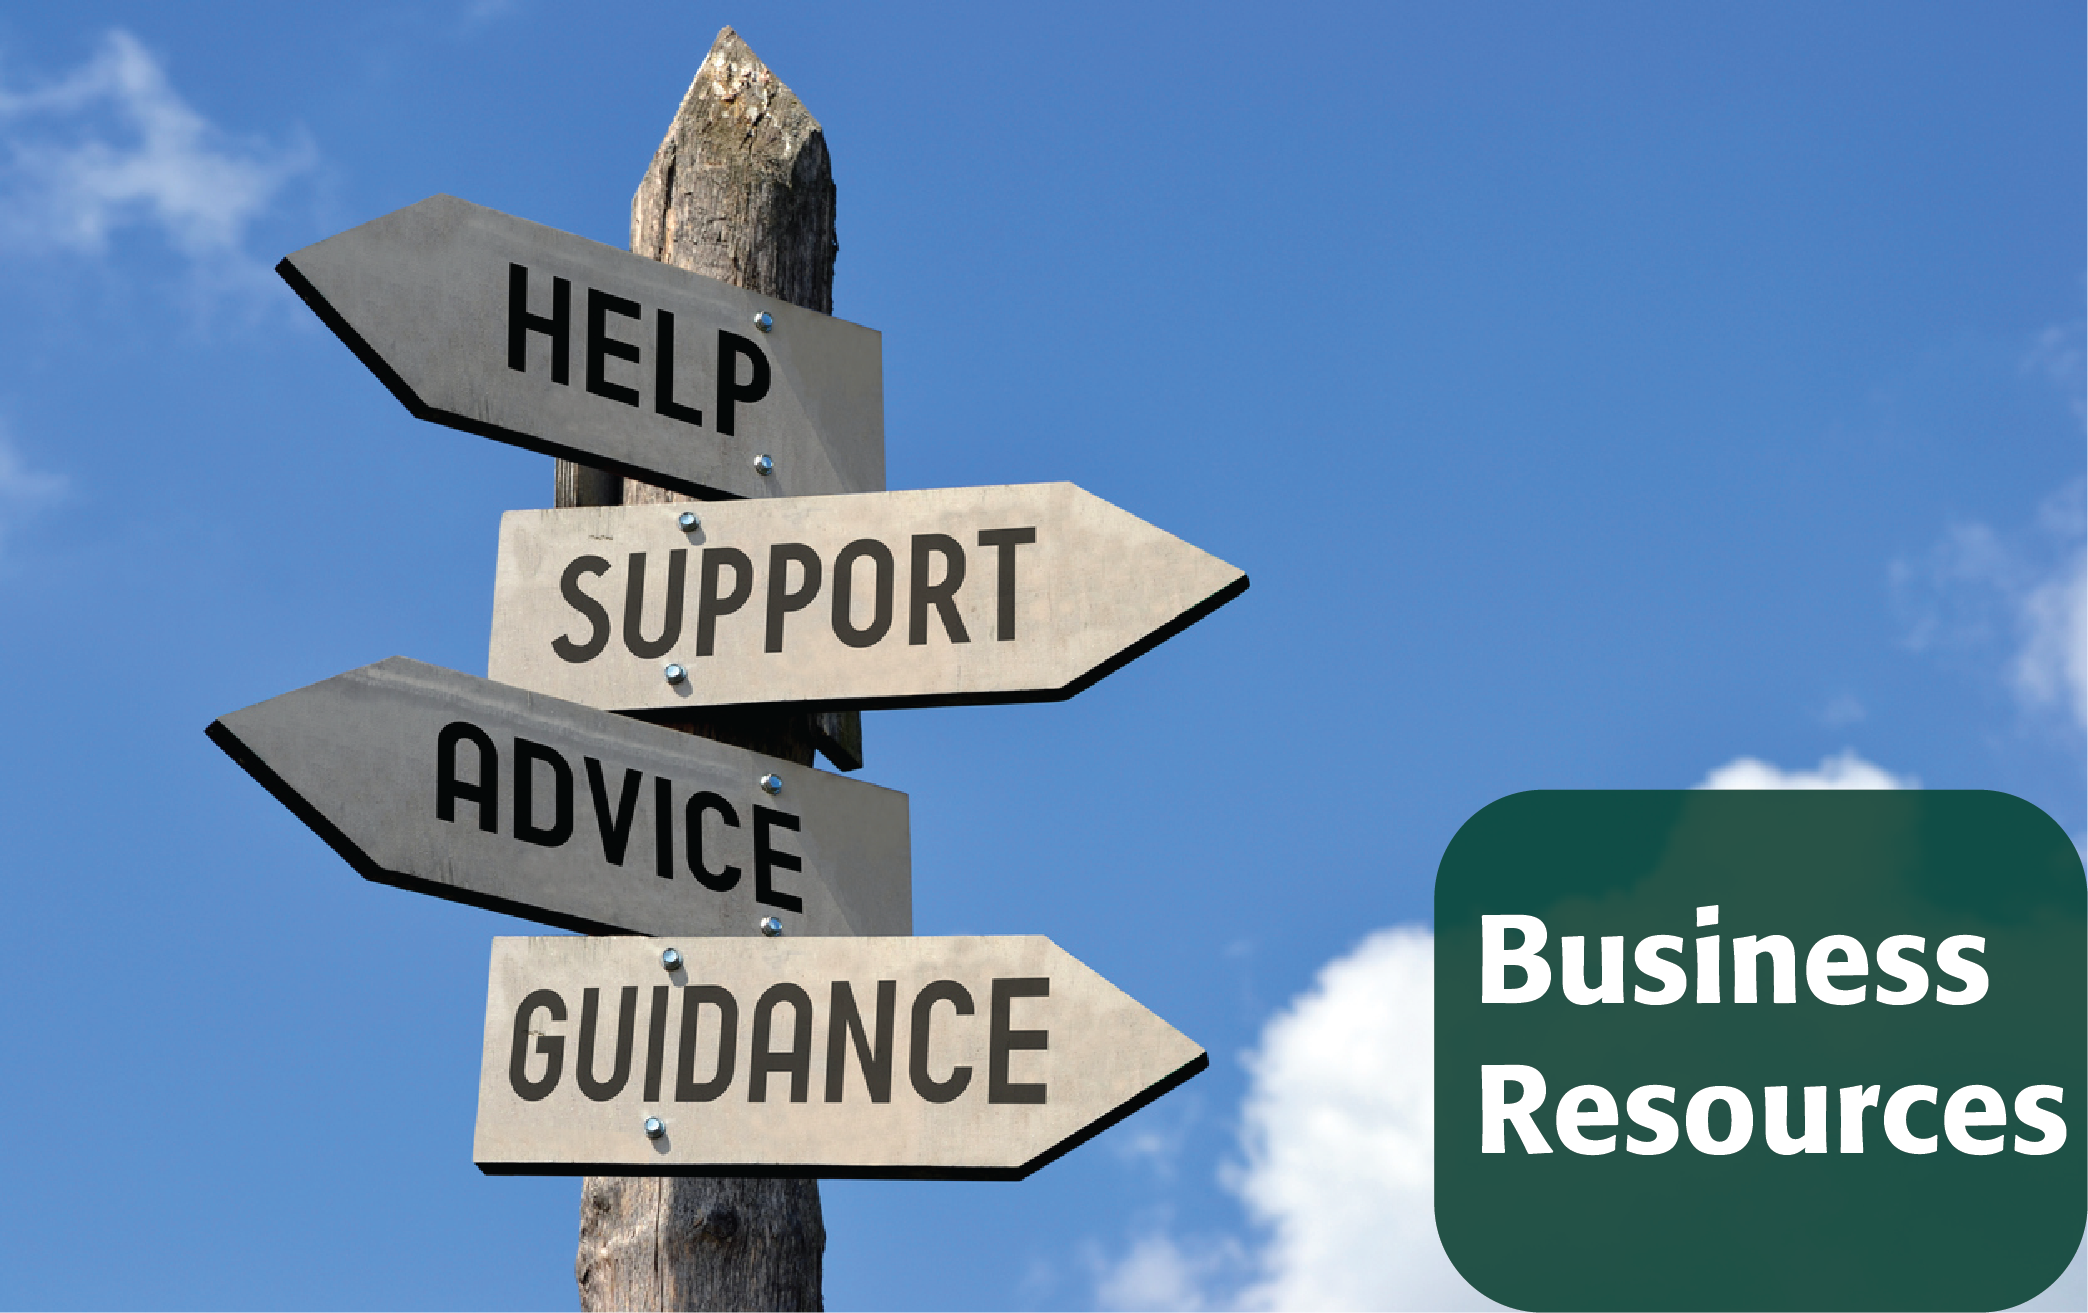 Help. Support. Advice. Guidance. Business Resources